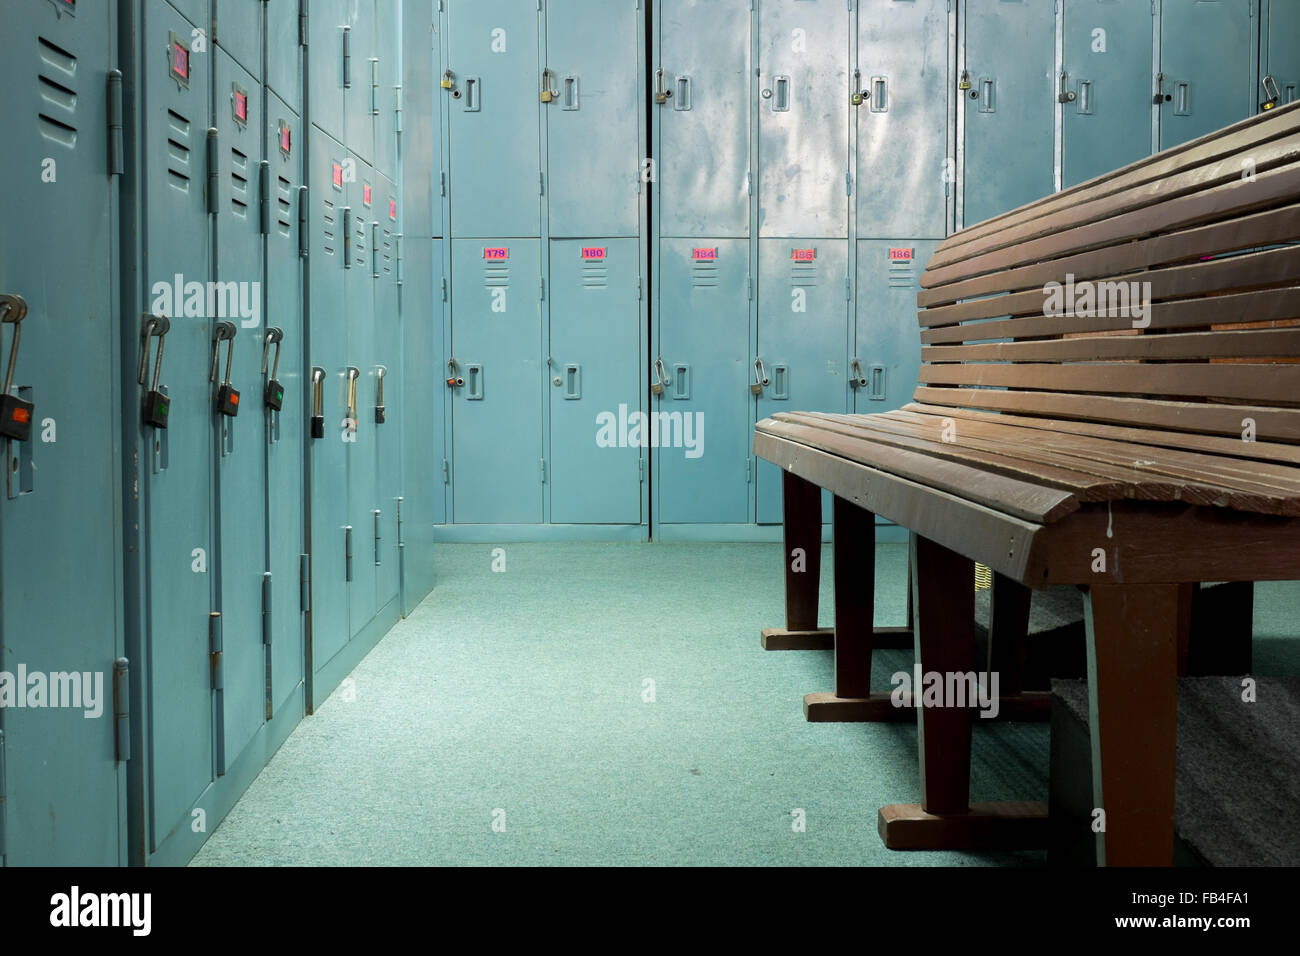 Shower Bench Stock Photos & Shower Bench Stock Images - Alamy